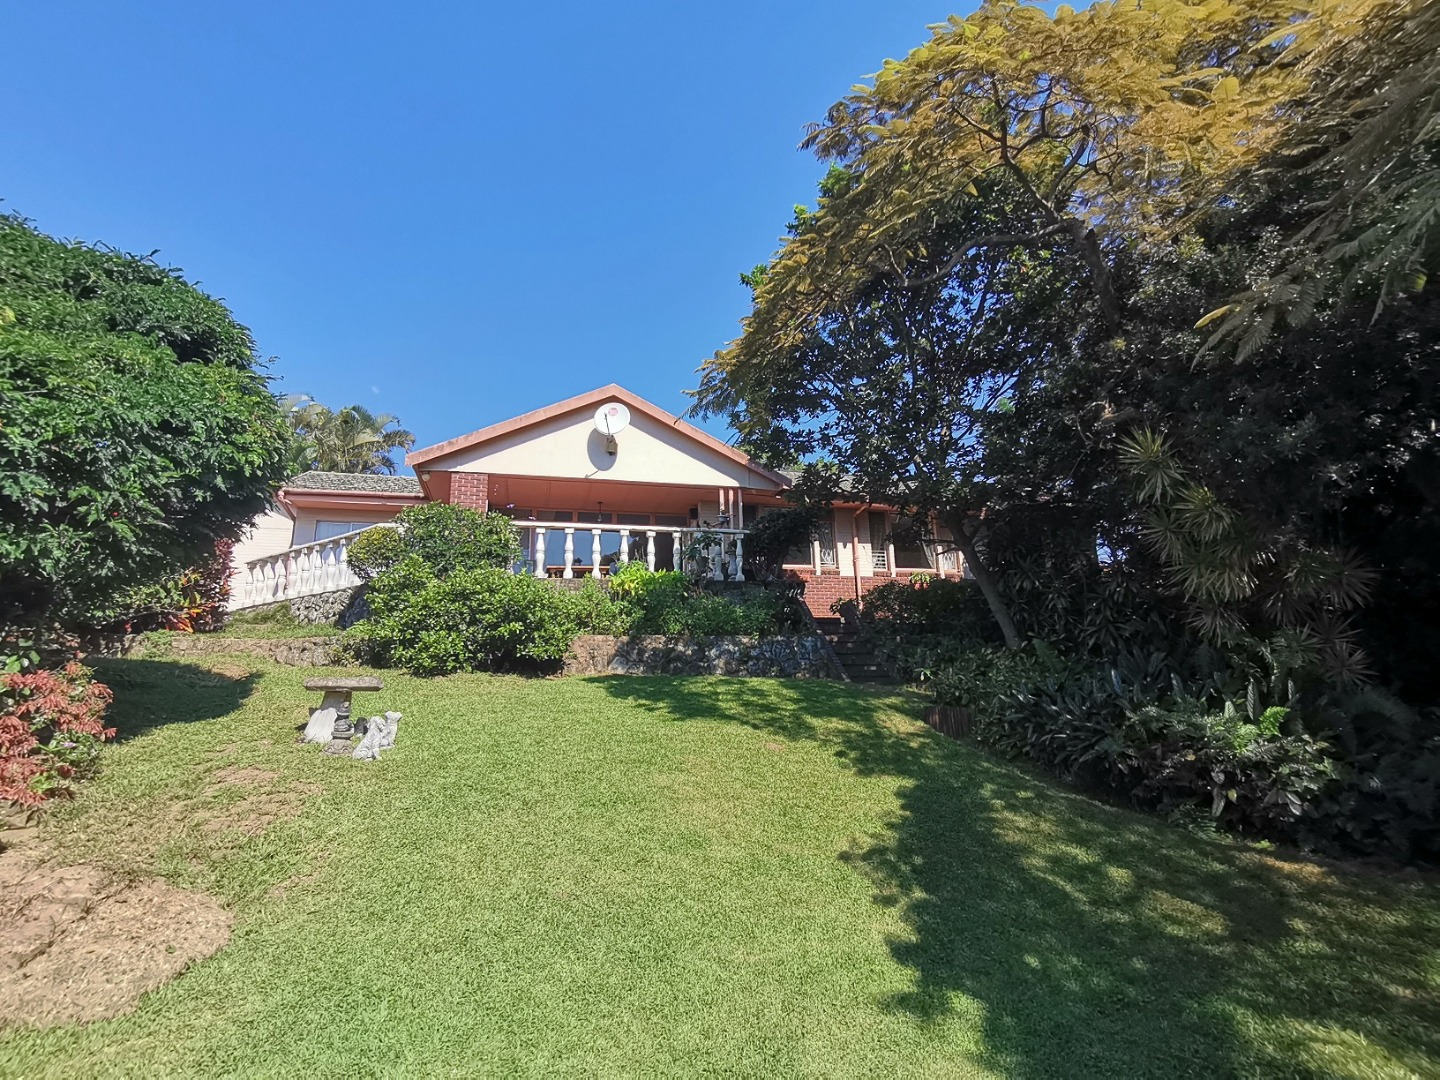 4 Bedroom House For Sale in St Michaels On Sea